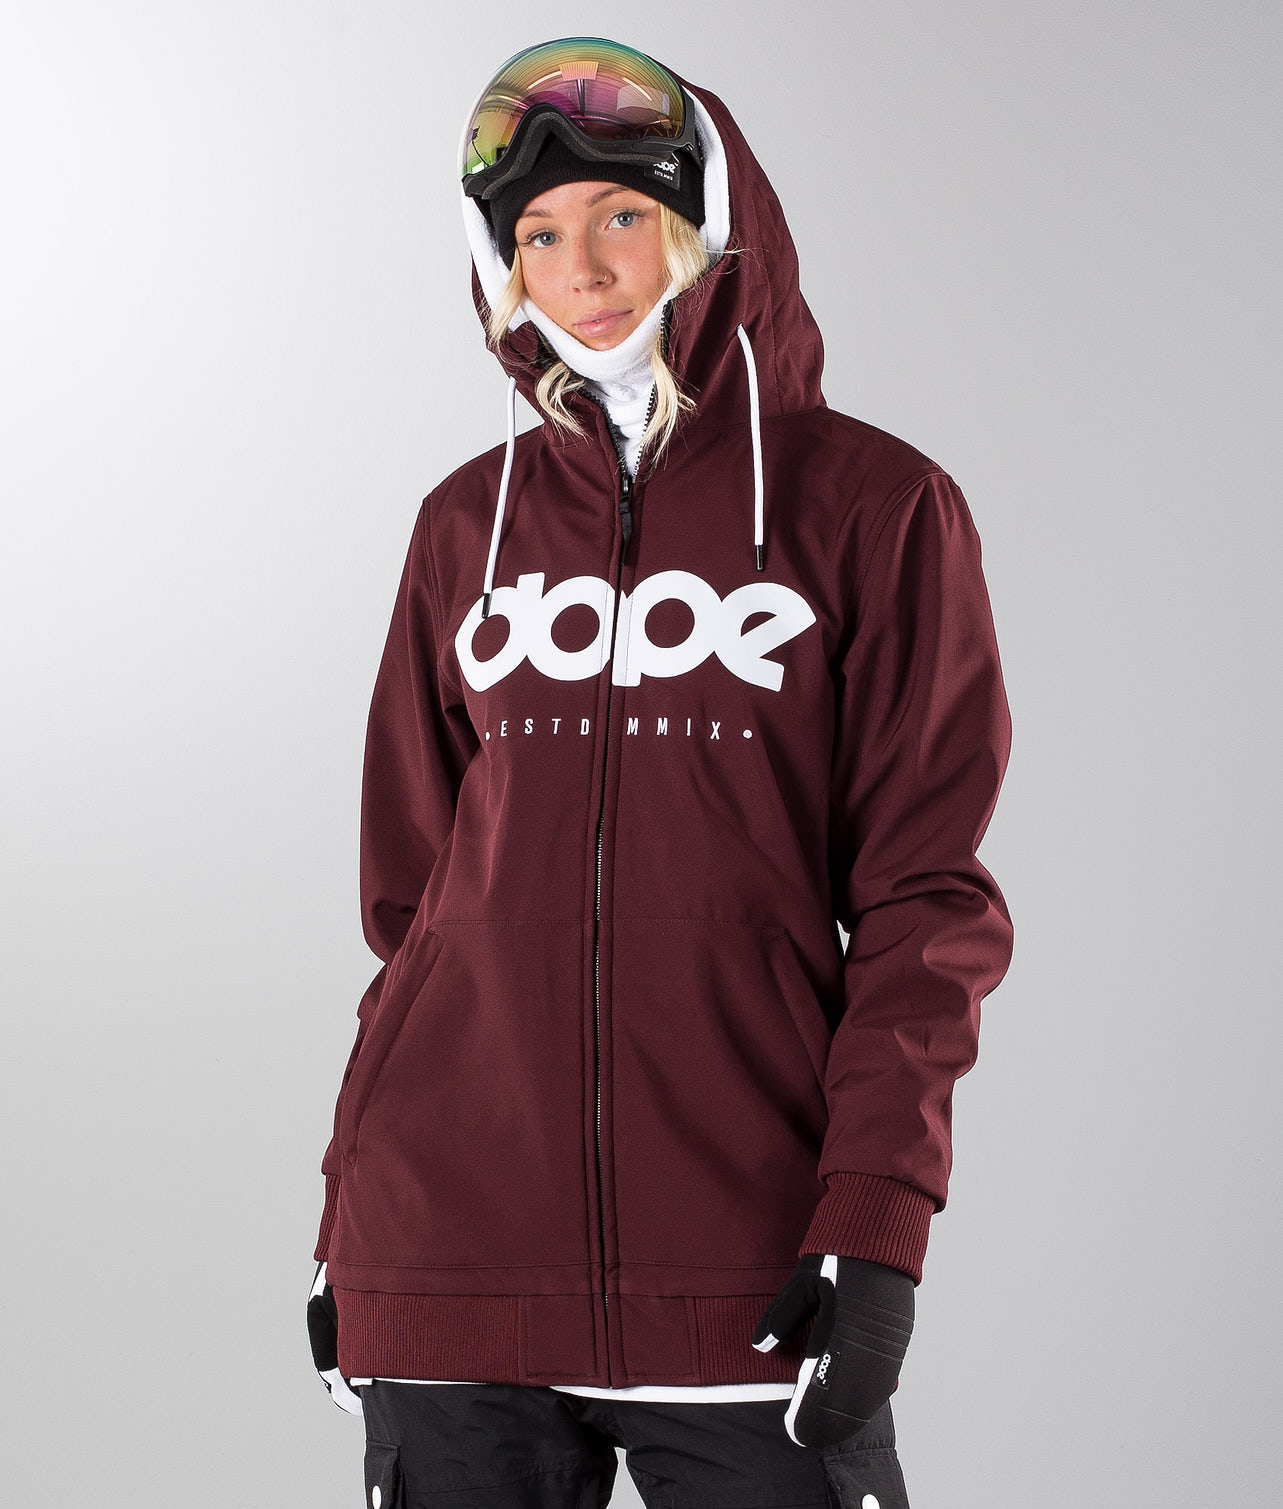 Buy Standard DO Ski Jacket from Dope at Ridestore.com - Always free shipping, free returns and 30 days money back guarantee